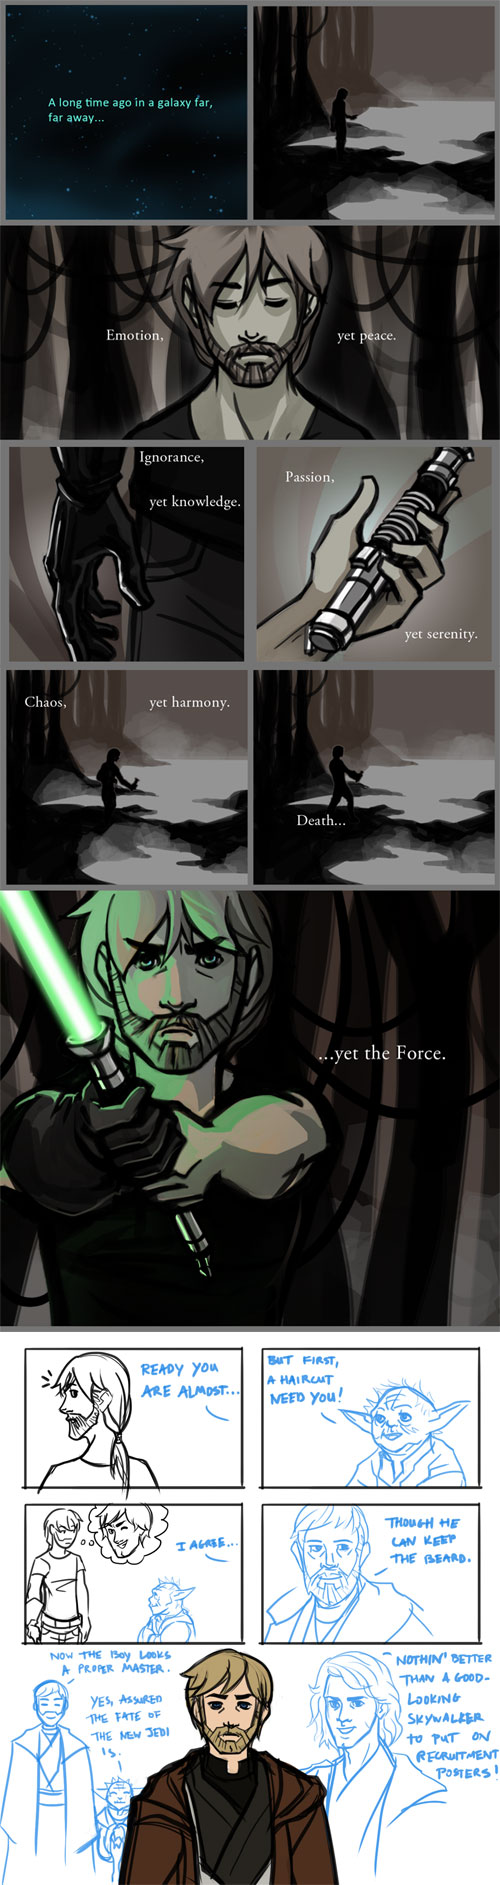 death yet the force by ex-m